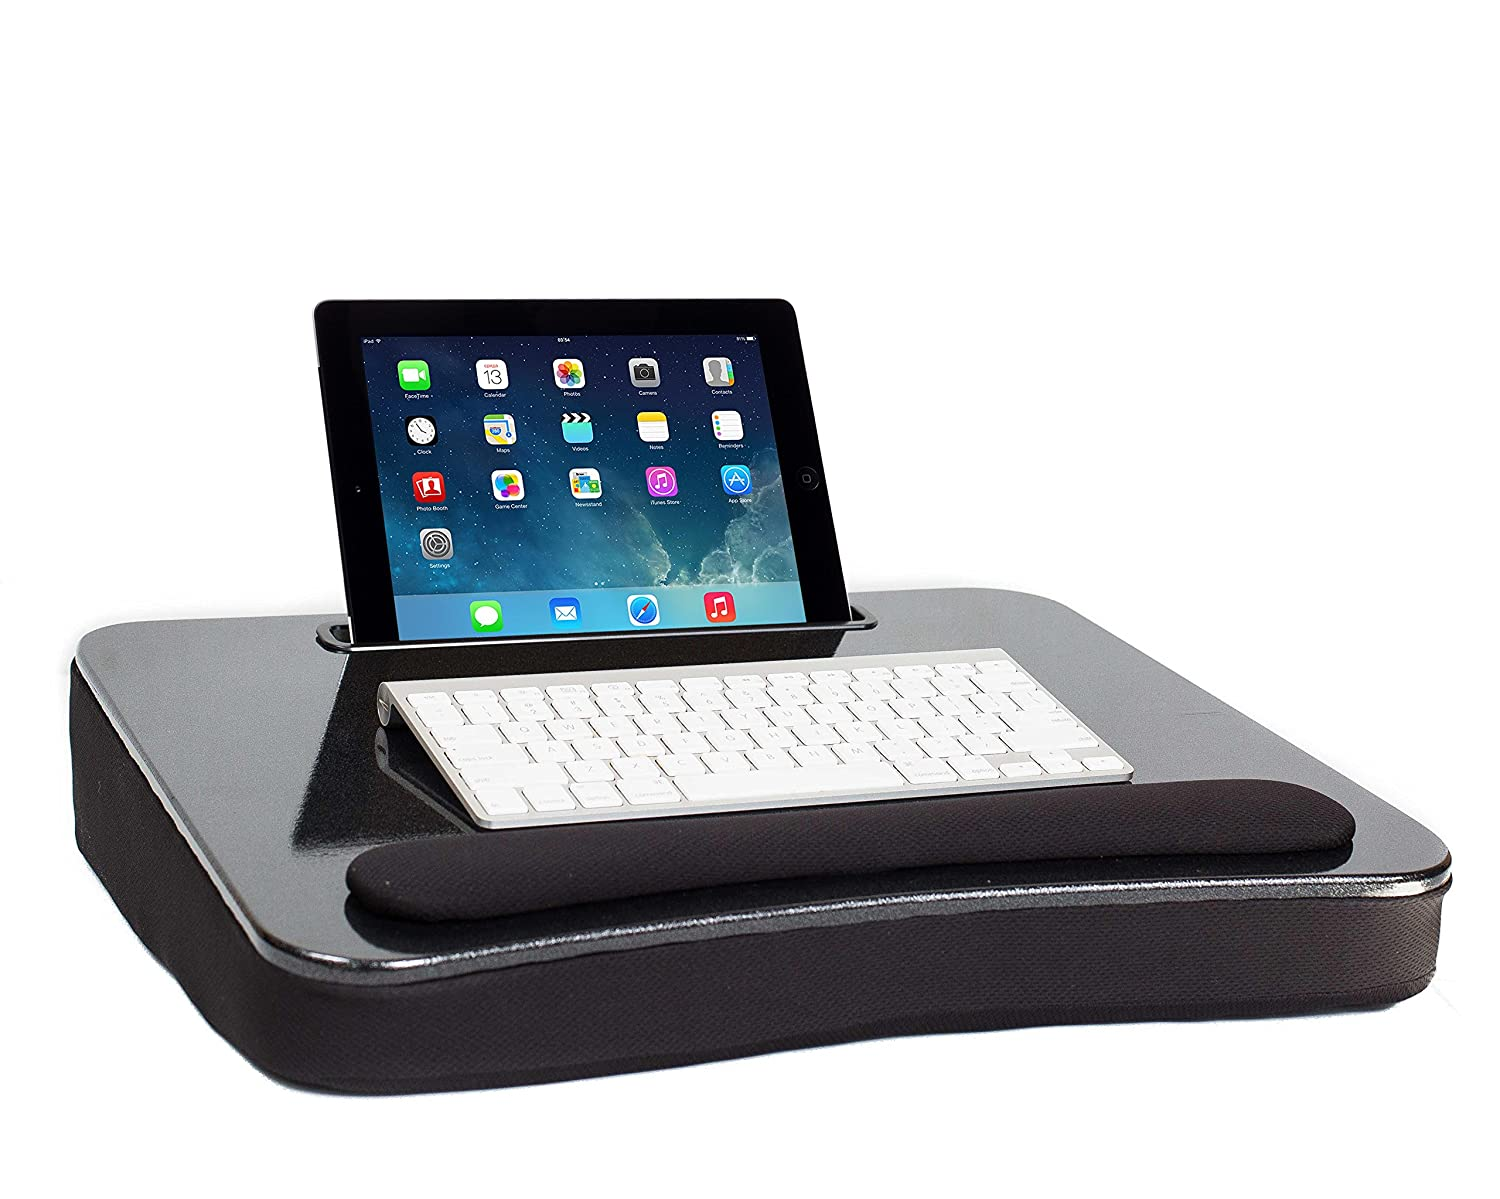 Sofia + Sam All Purpose Memory Foam Lap Desk (Black Sparkle Top) with Tablet Slot - Supports Laptops Up to 17 Inches